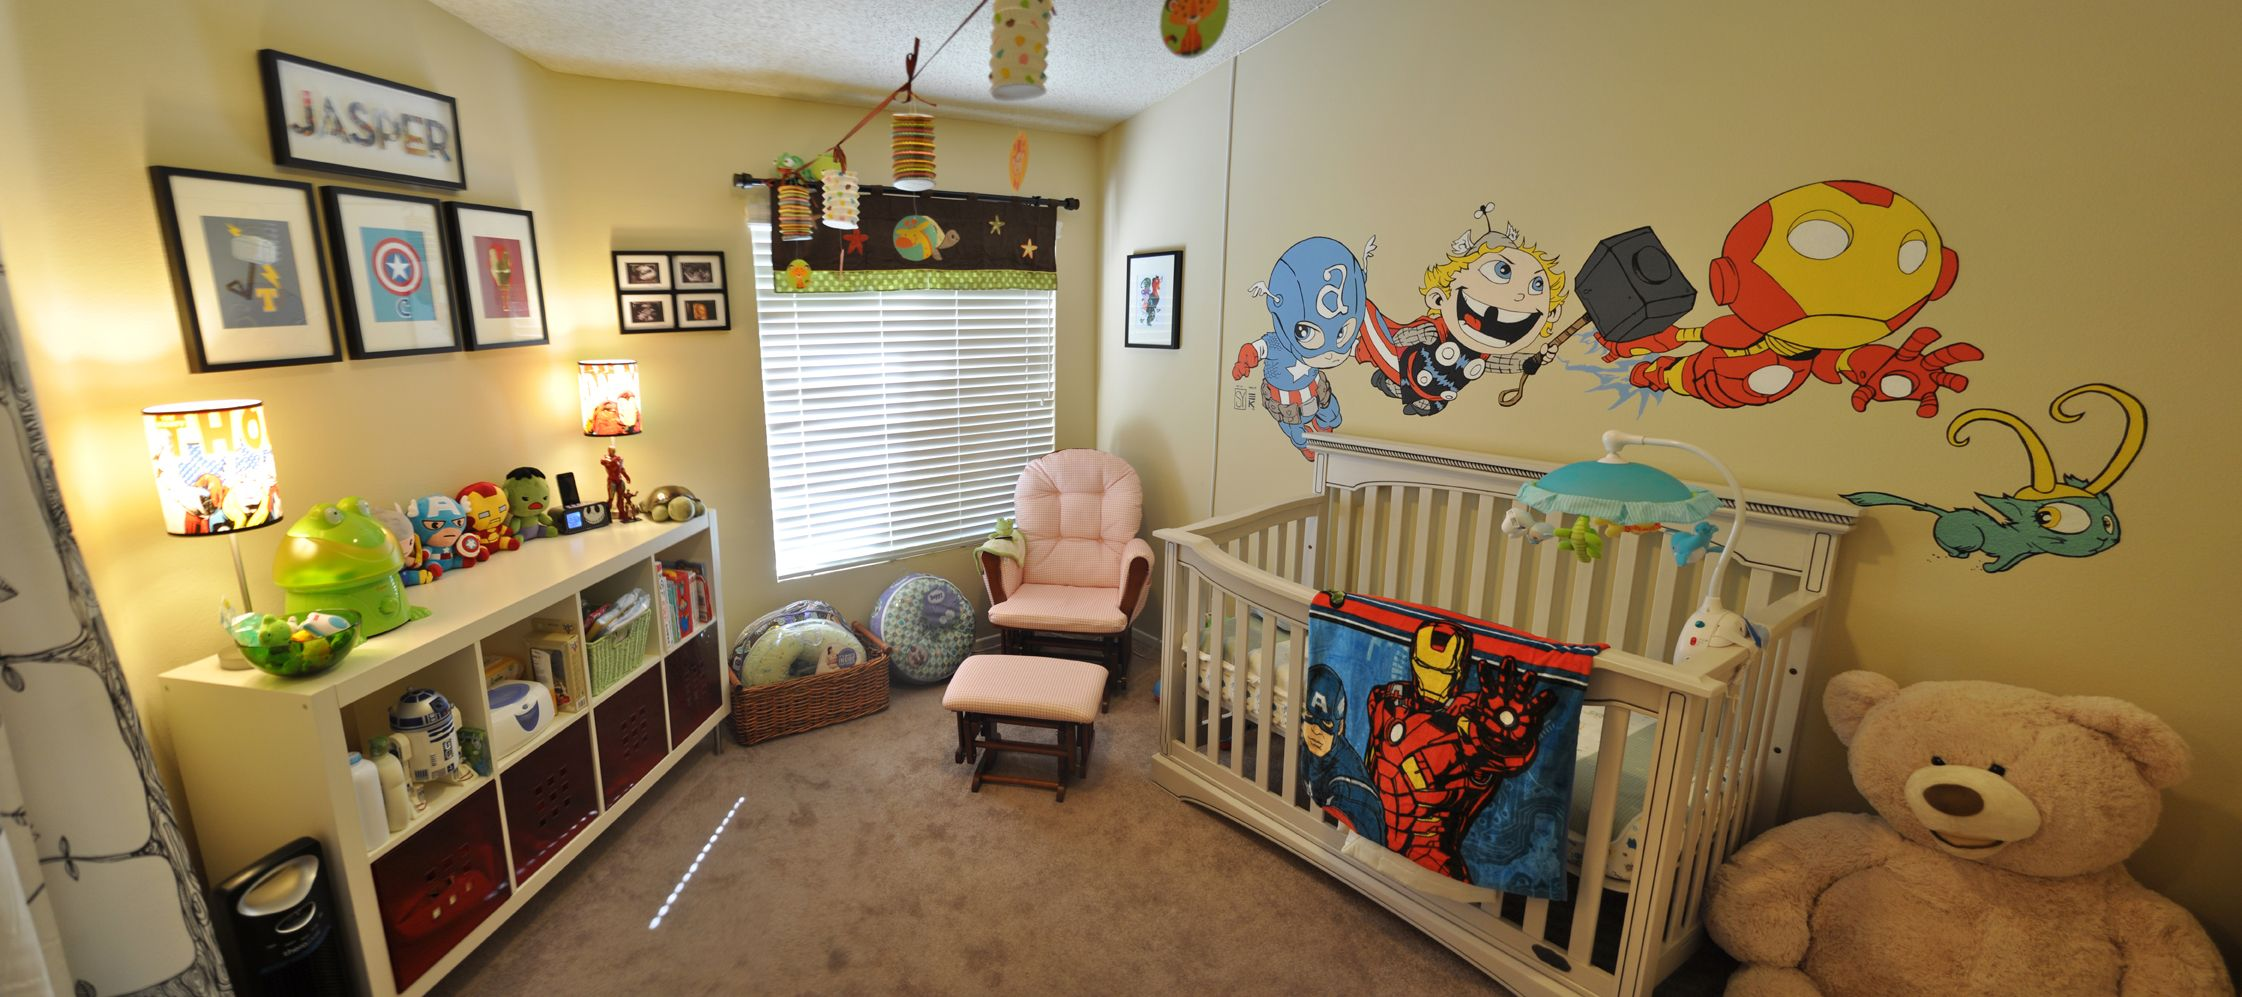 Marvel Themed Bedroom This Is What My Baby's Nursery Will Look Like Home Mods